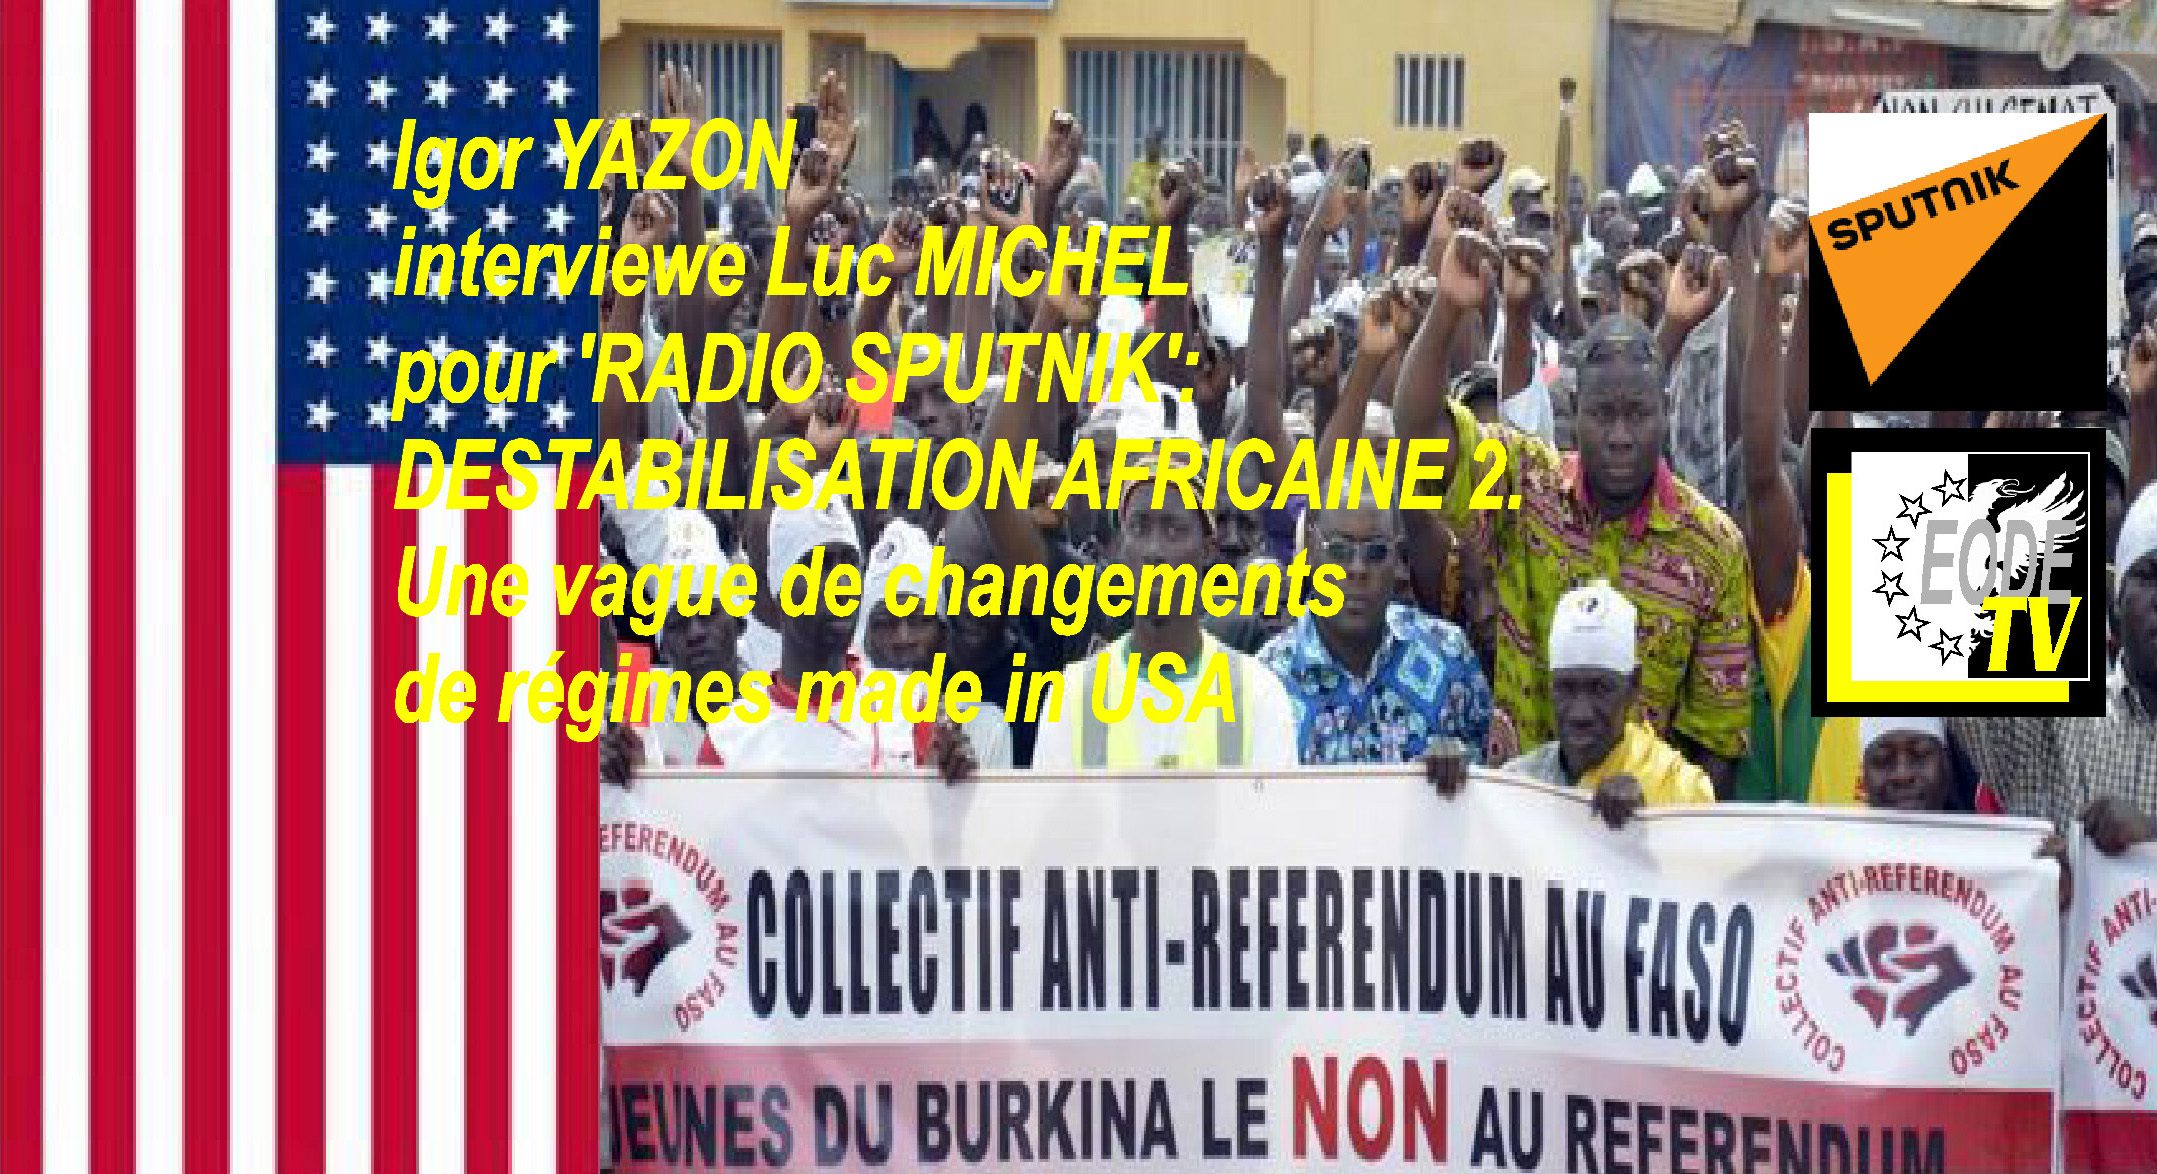 EODE-TV - EXPERTS lm DESTABILISATION AFRICAINE 2. LA VAGUE (2015 10 03)  FR